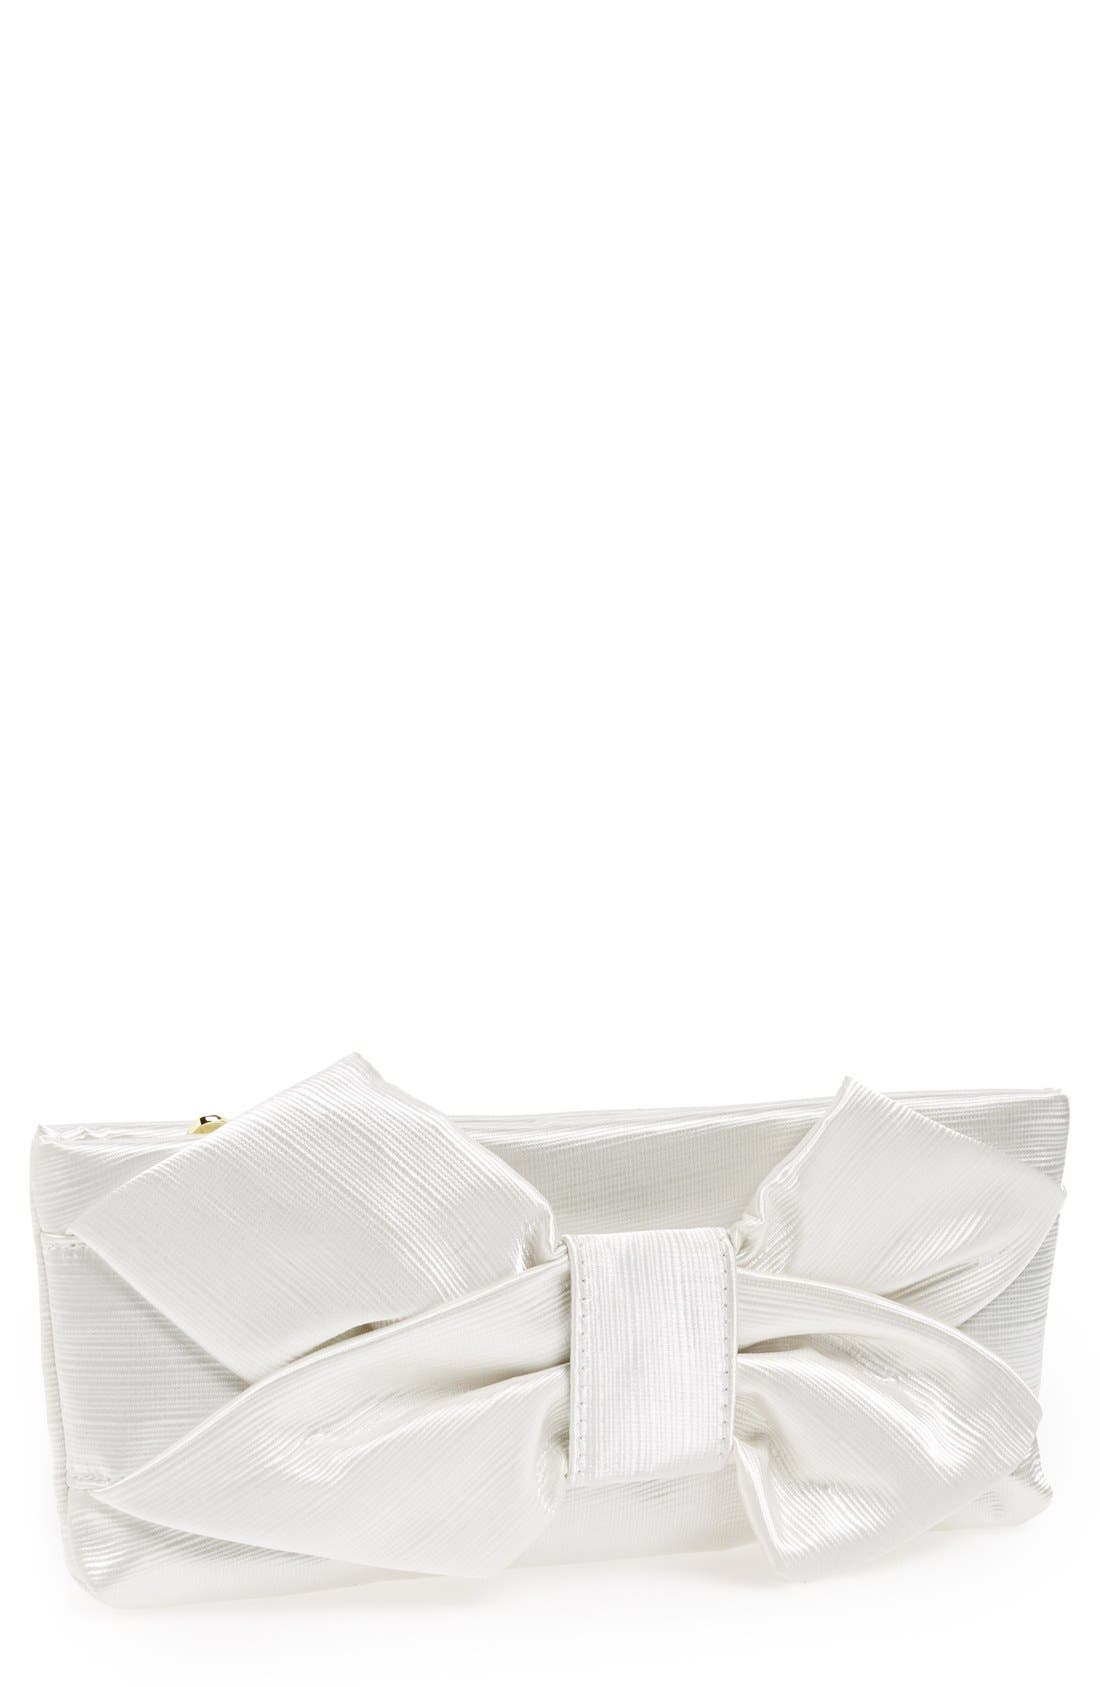 Alternate Image 1 Selected - Betsey Johnson Satin Bow Clutch